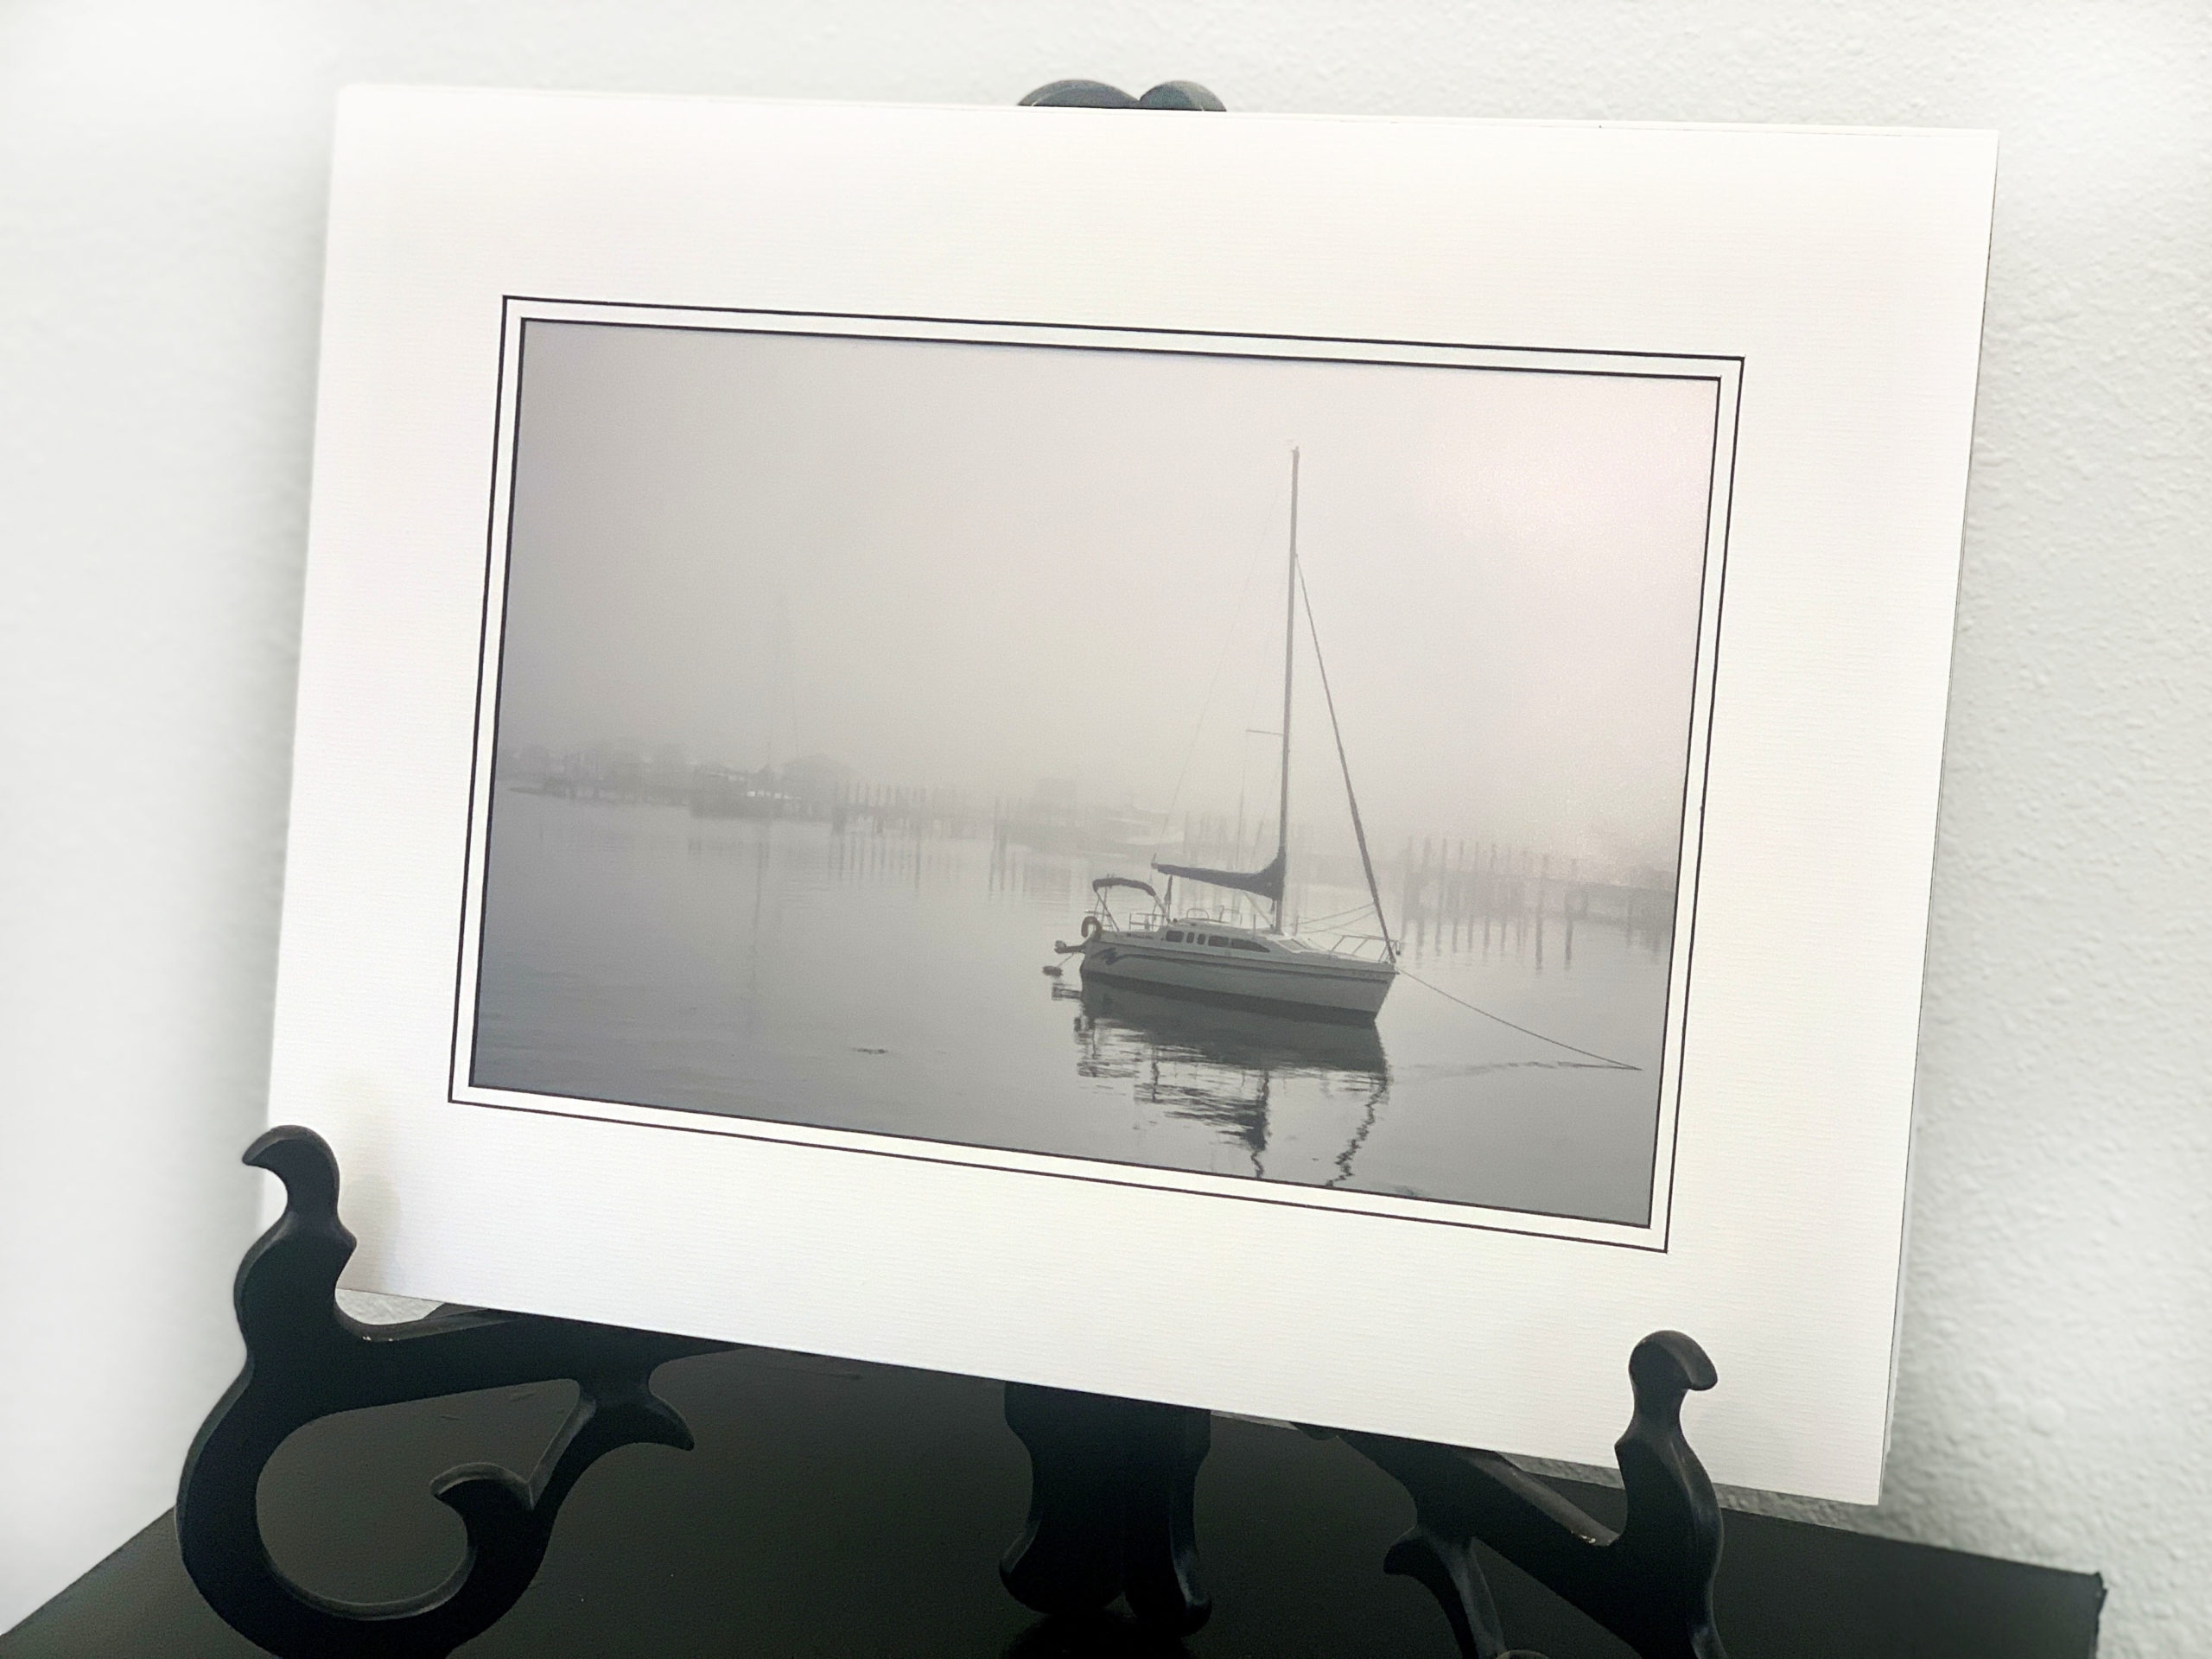 black and white sail boat on misty lake